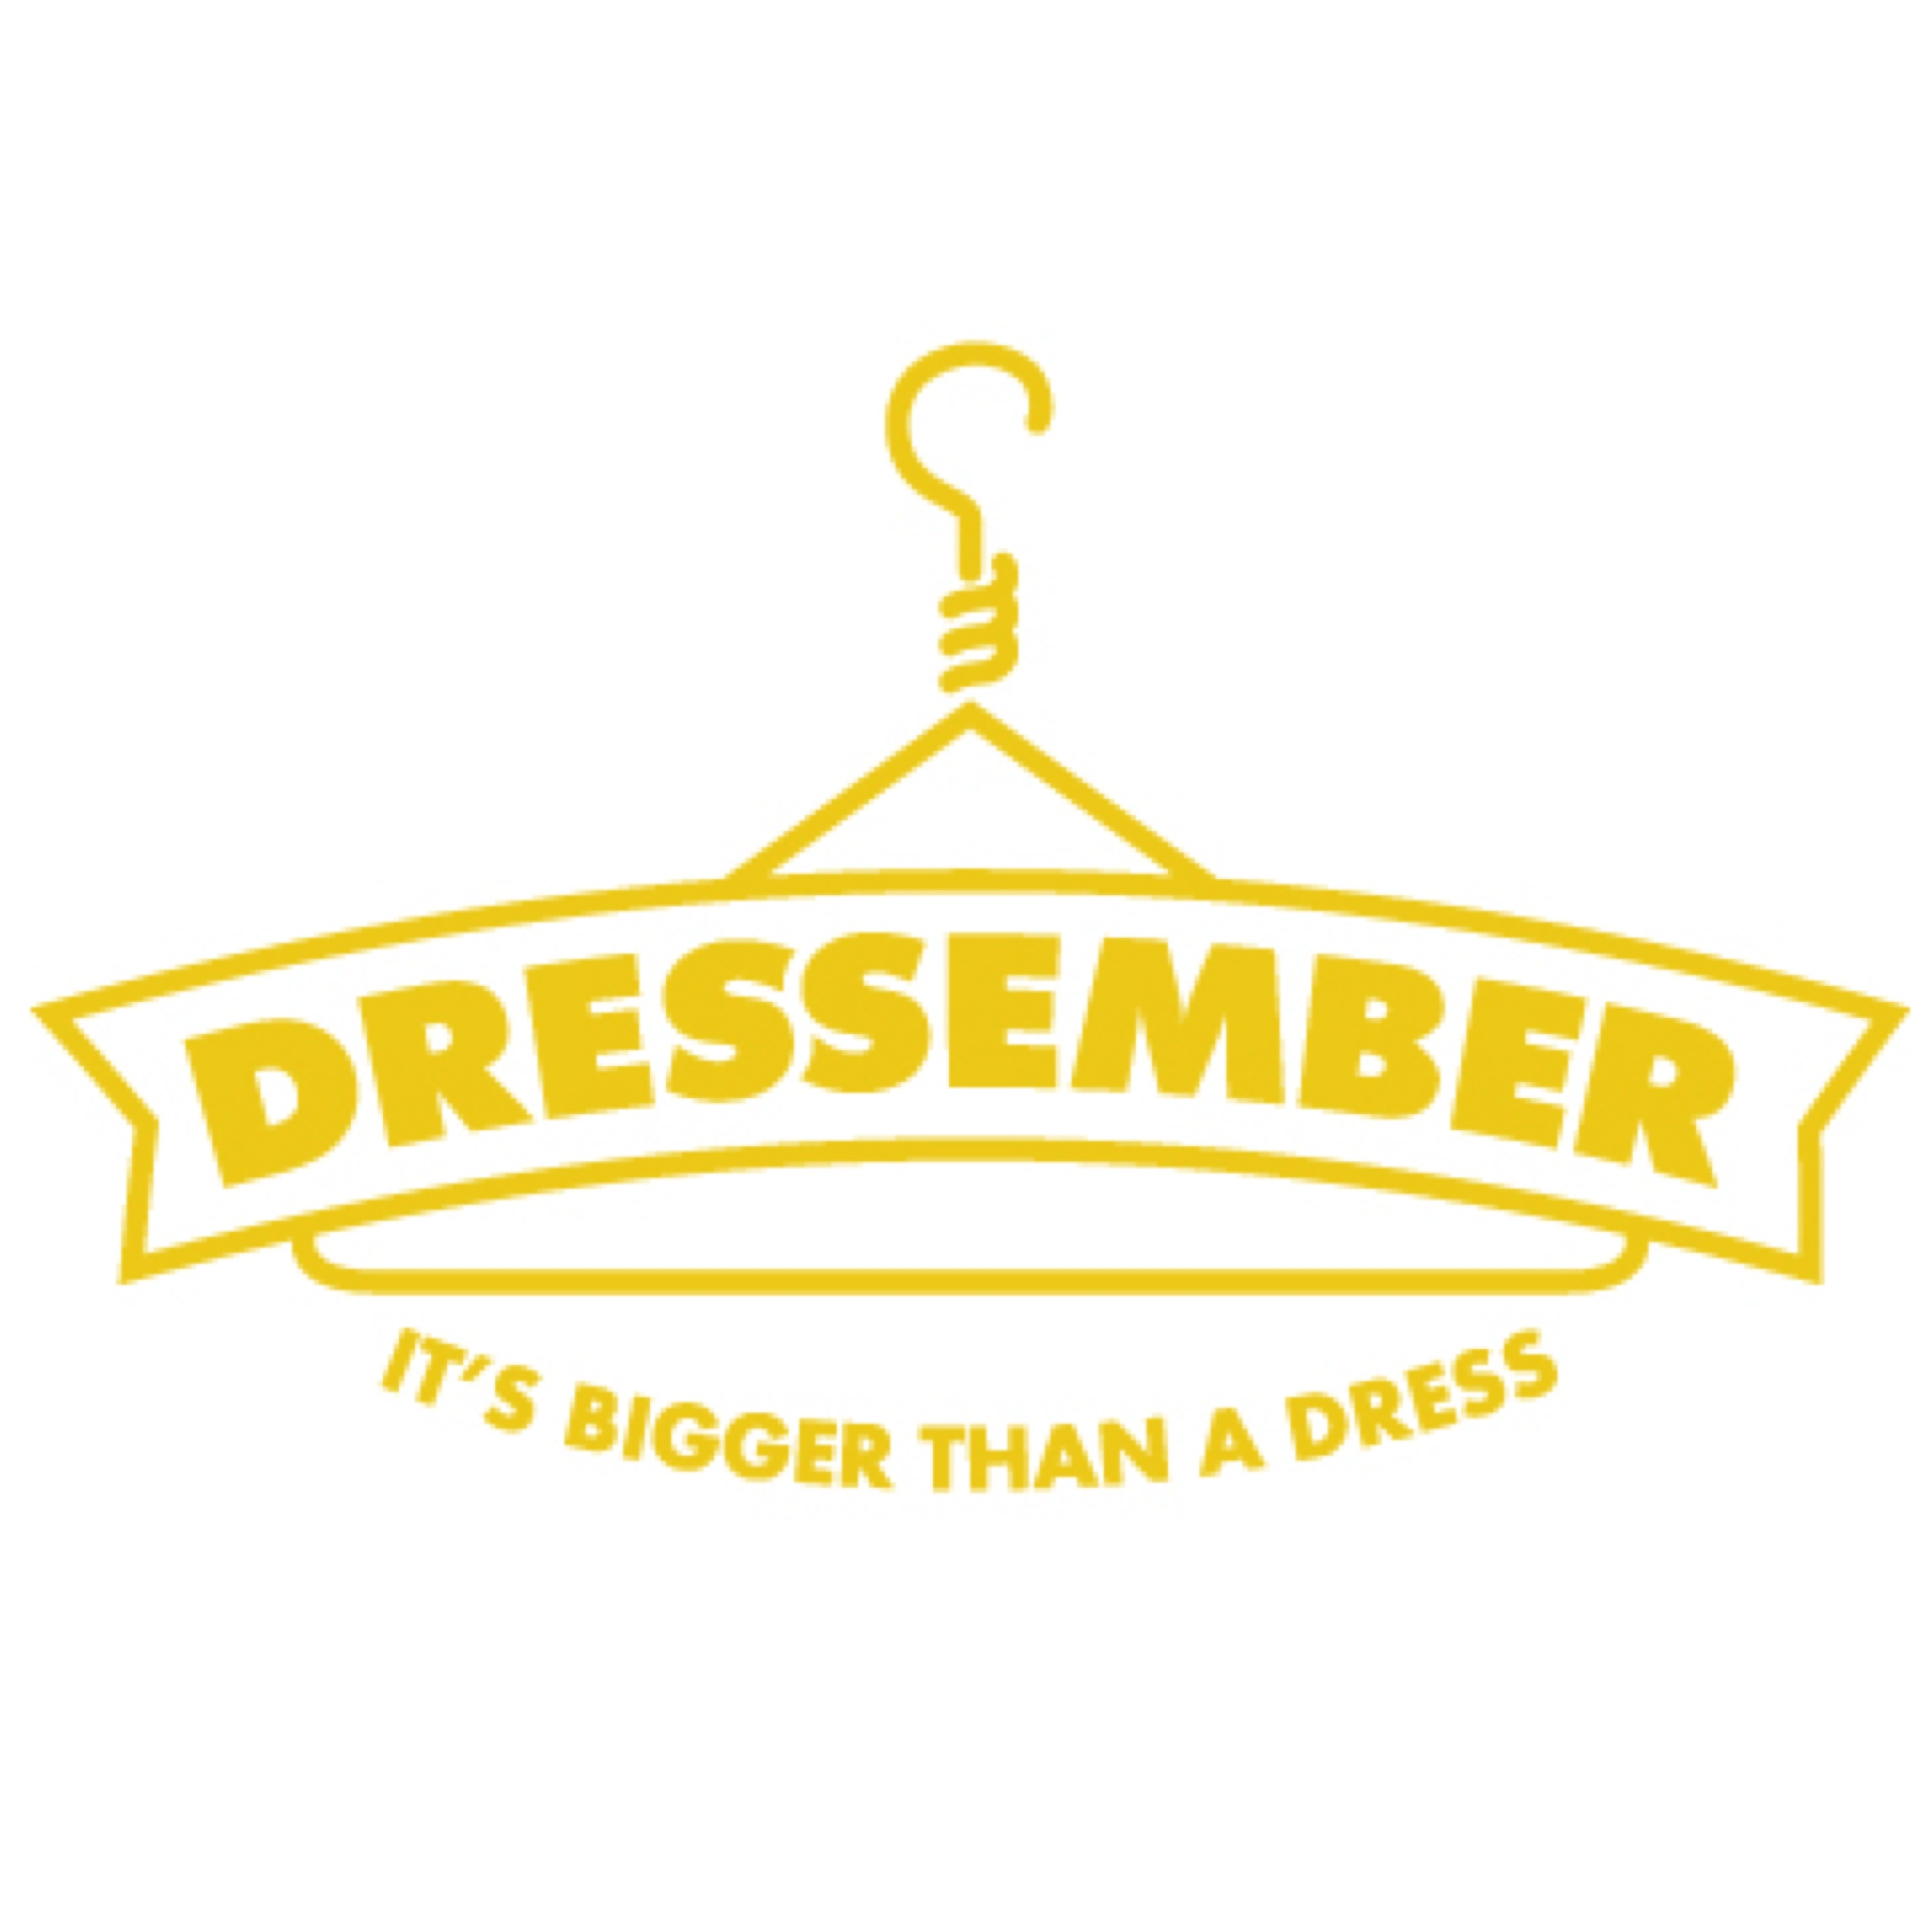 dressember international justice mission beyoutiful hope